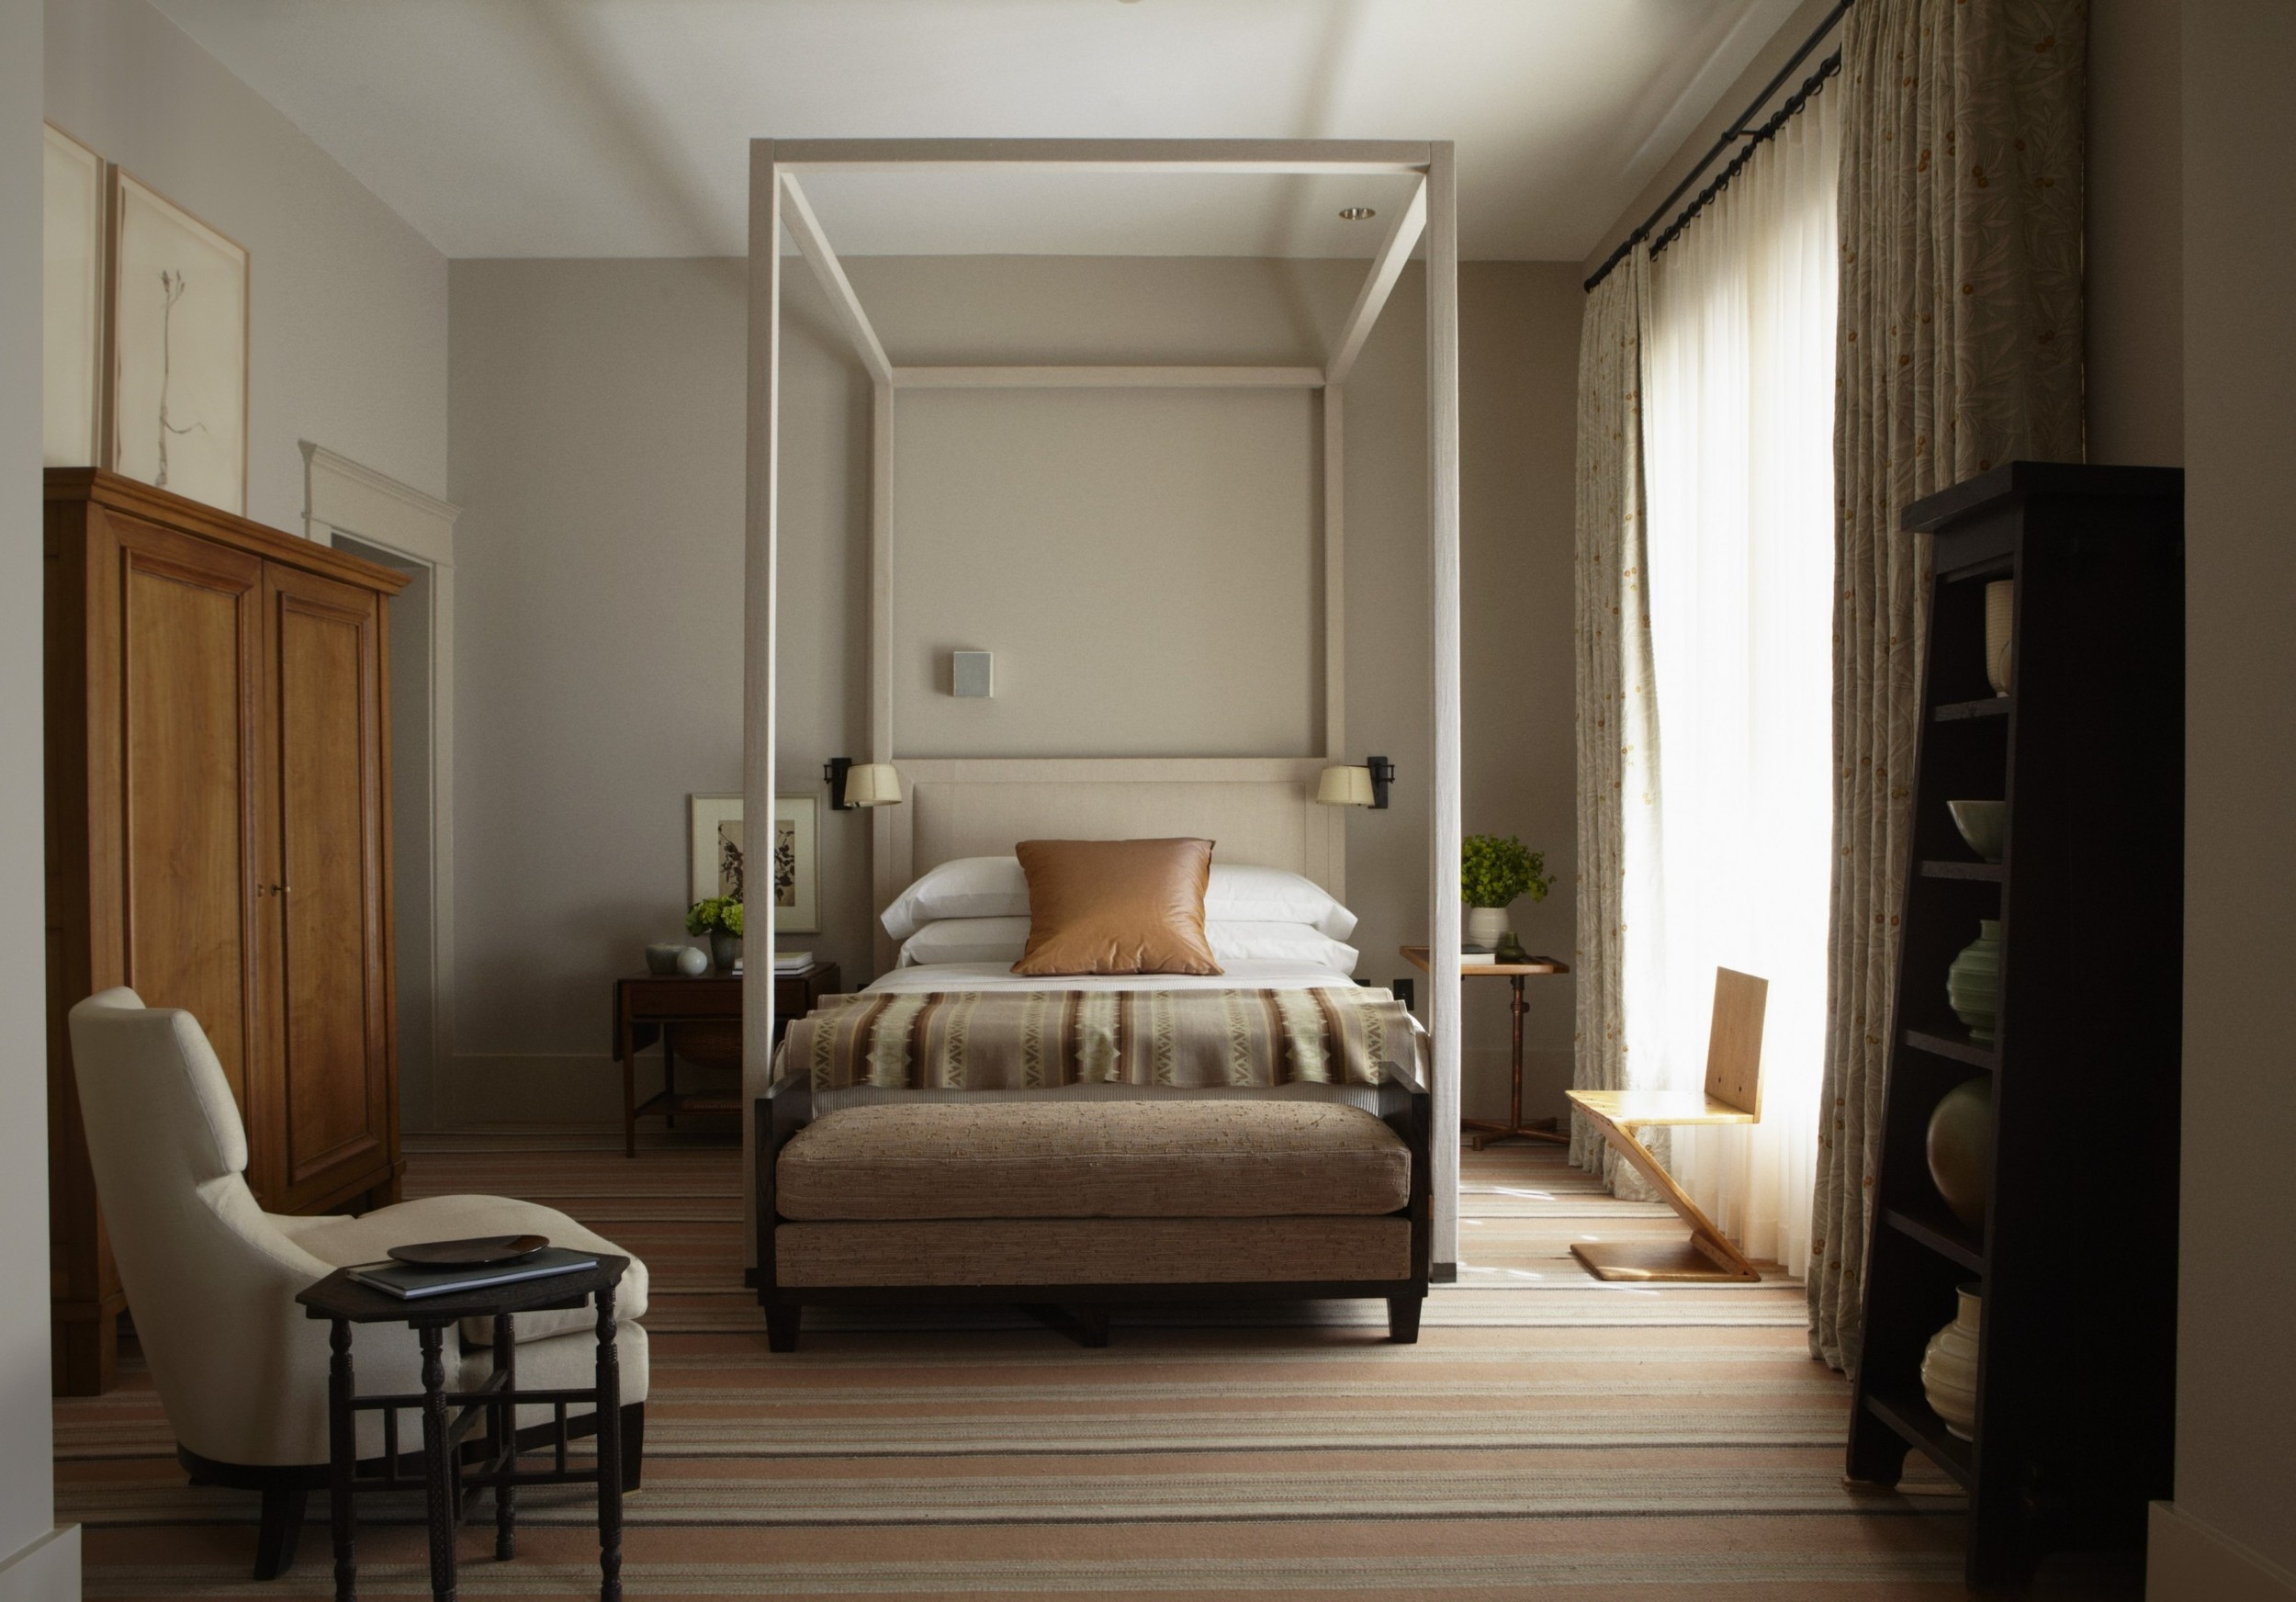 Mark-Cunningham-Bedroom-3.jpg